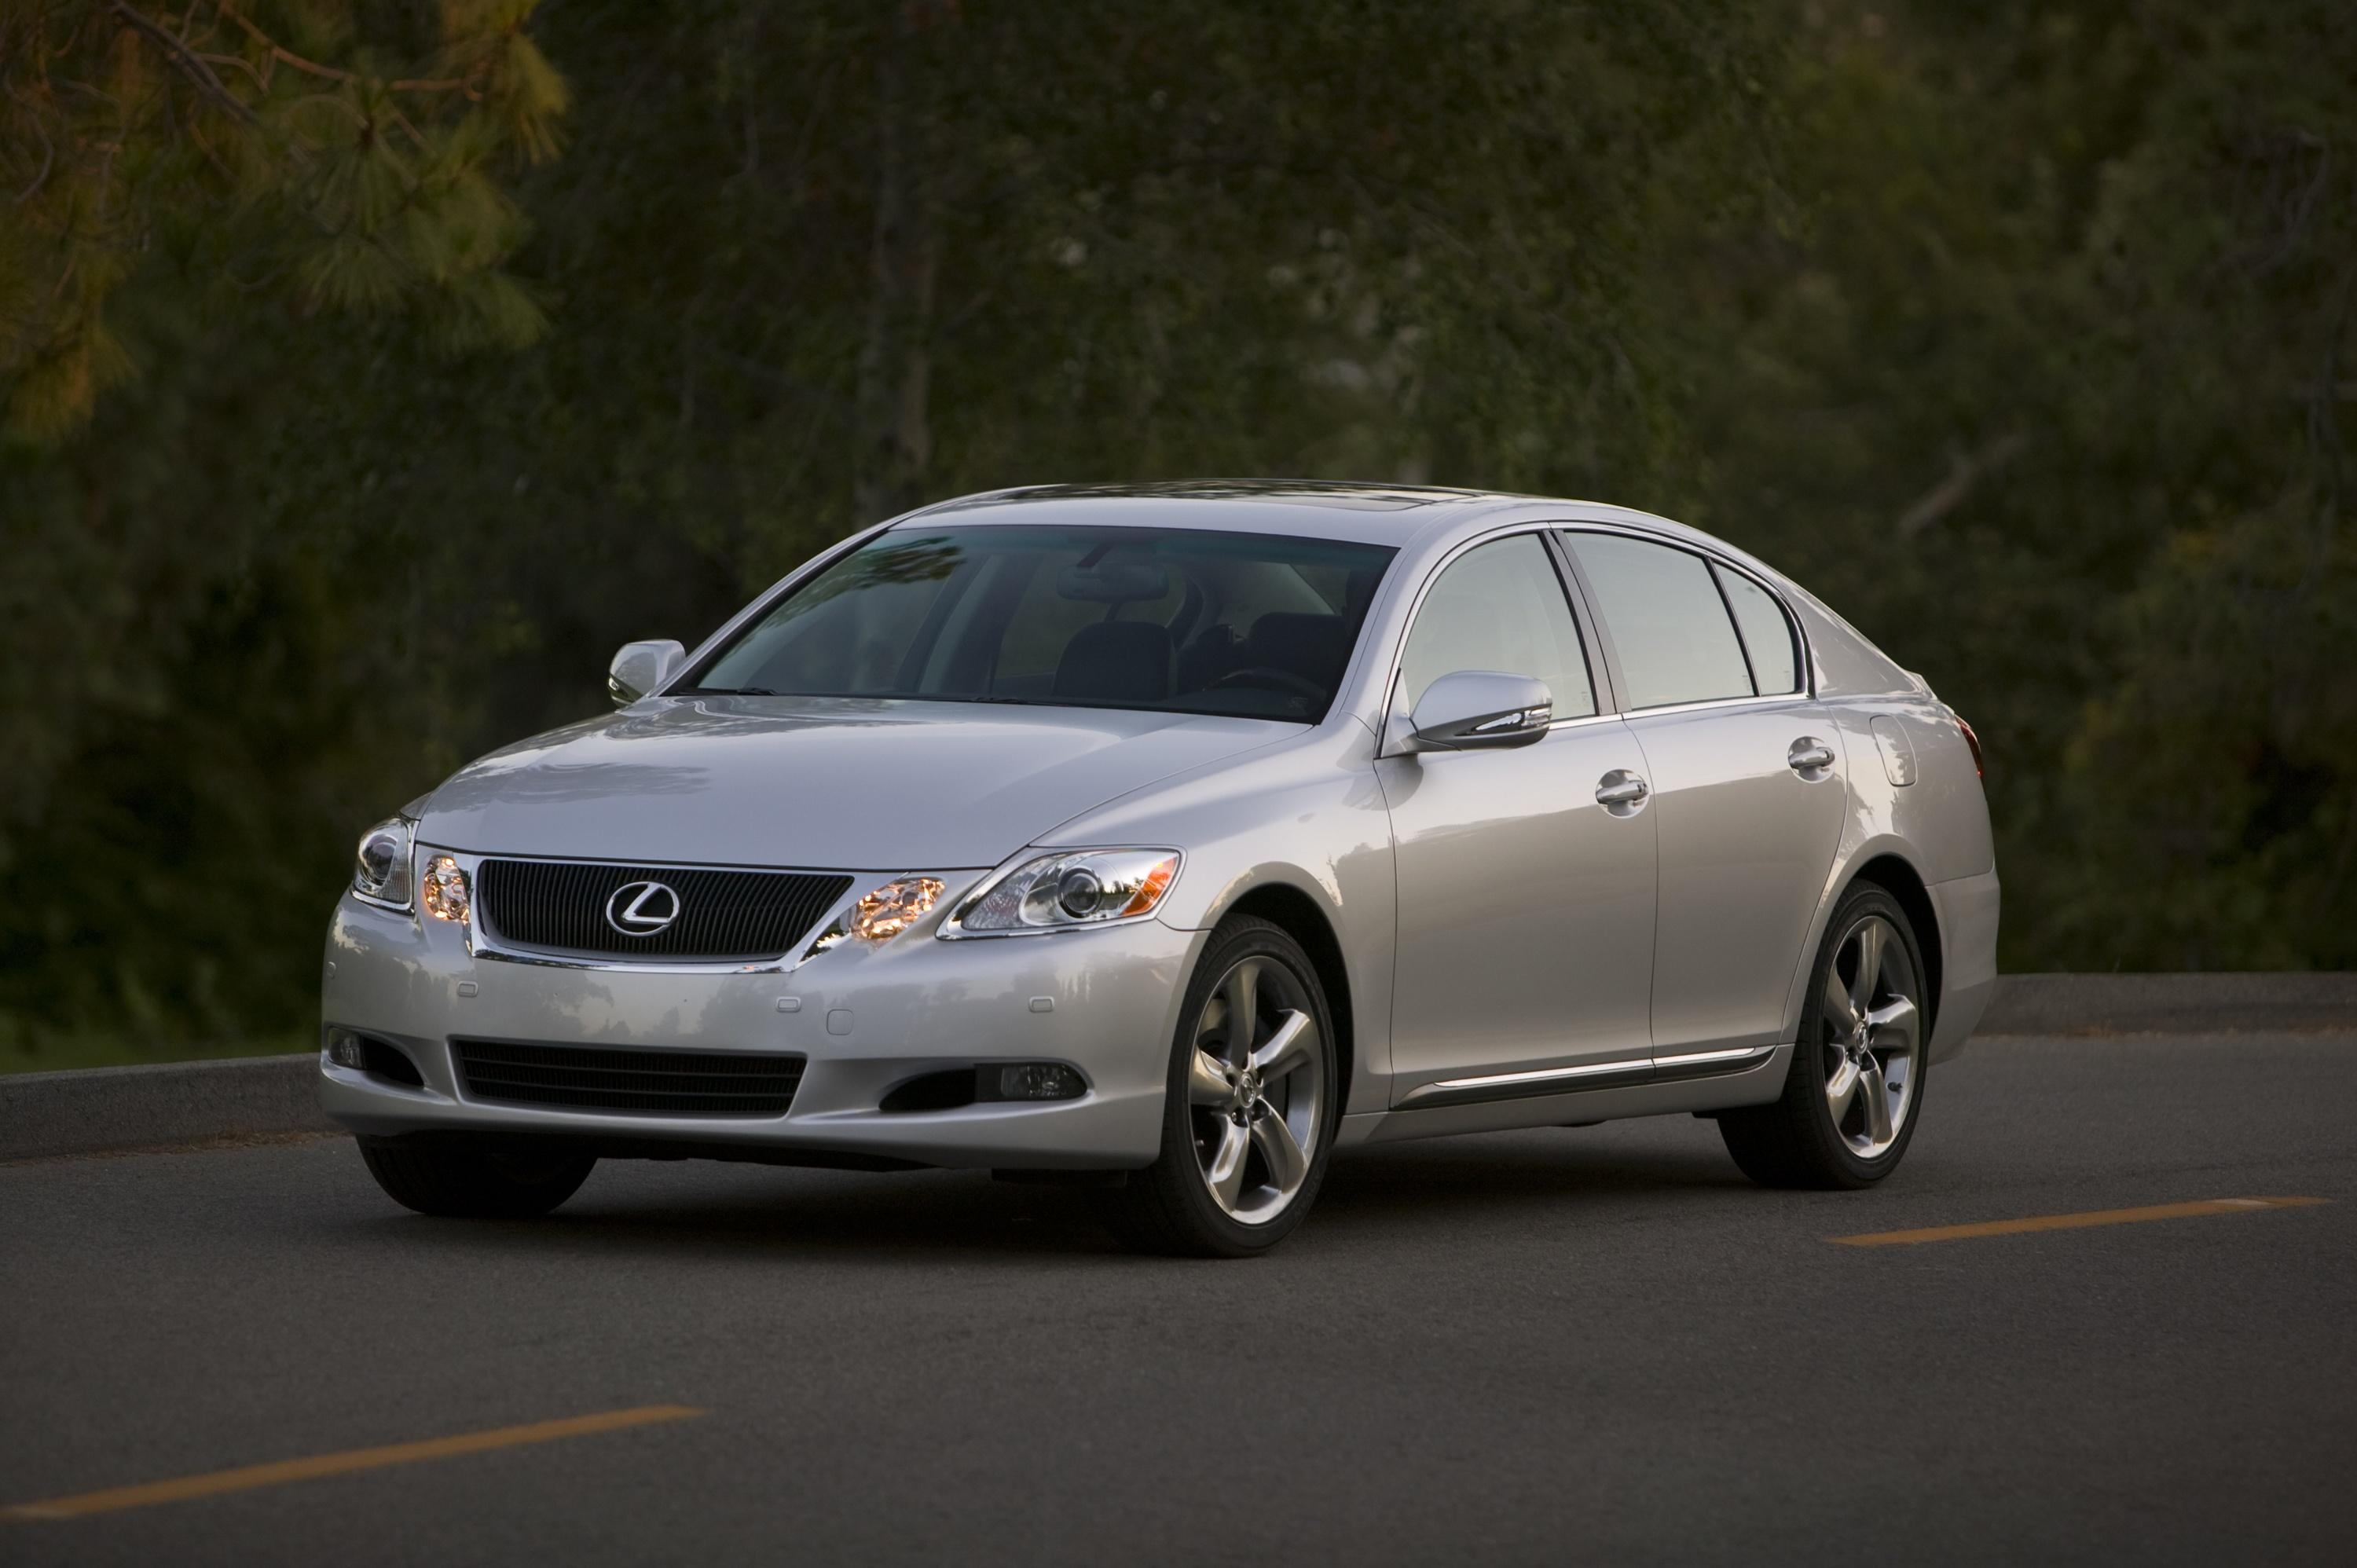 2008 lexus gs460 pictures photos wallpapers top speed. Black Bedroom Furniture Sets. Home Design Ideas